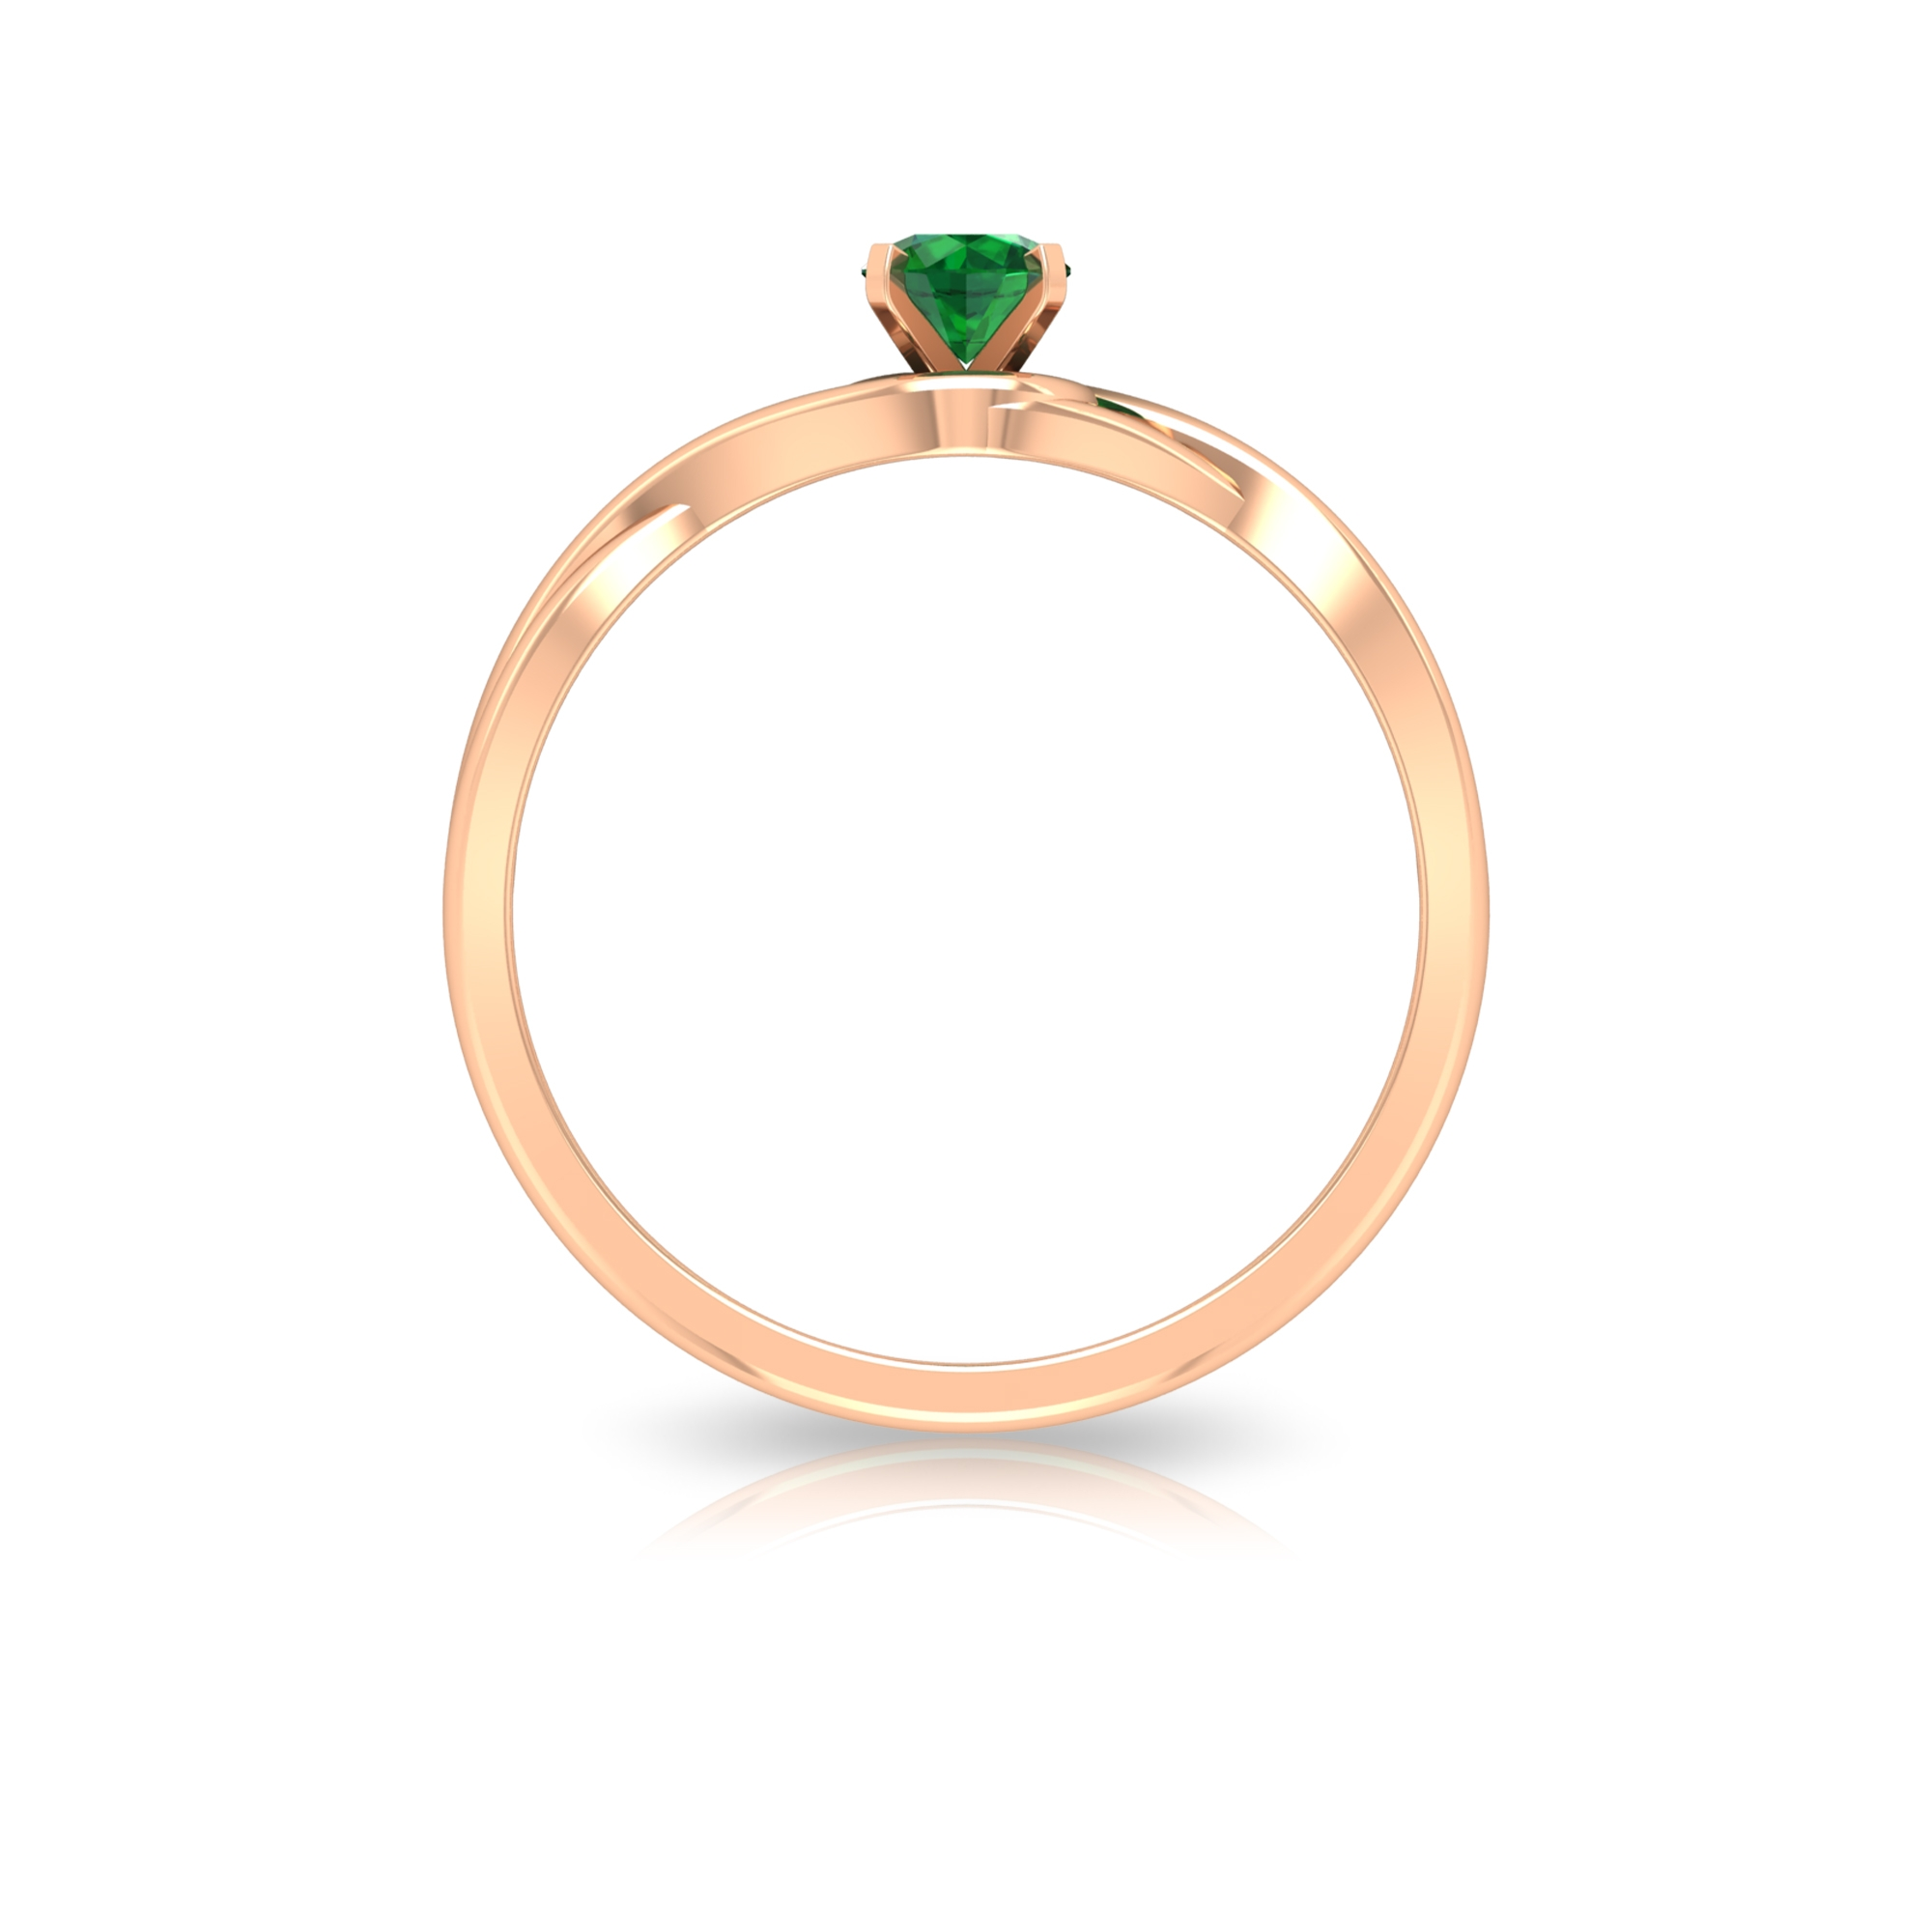 4 MM Round Cut Solitaire Emerald Ring in Square Prong Setting with Crossover Shank